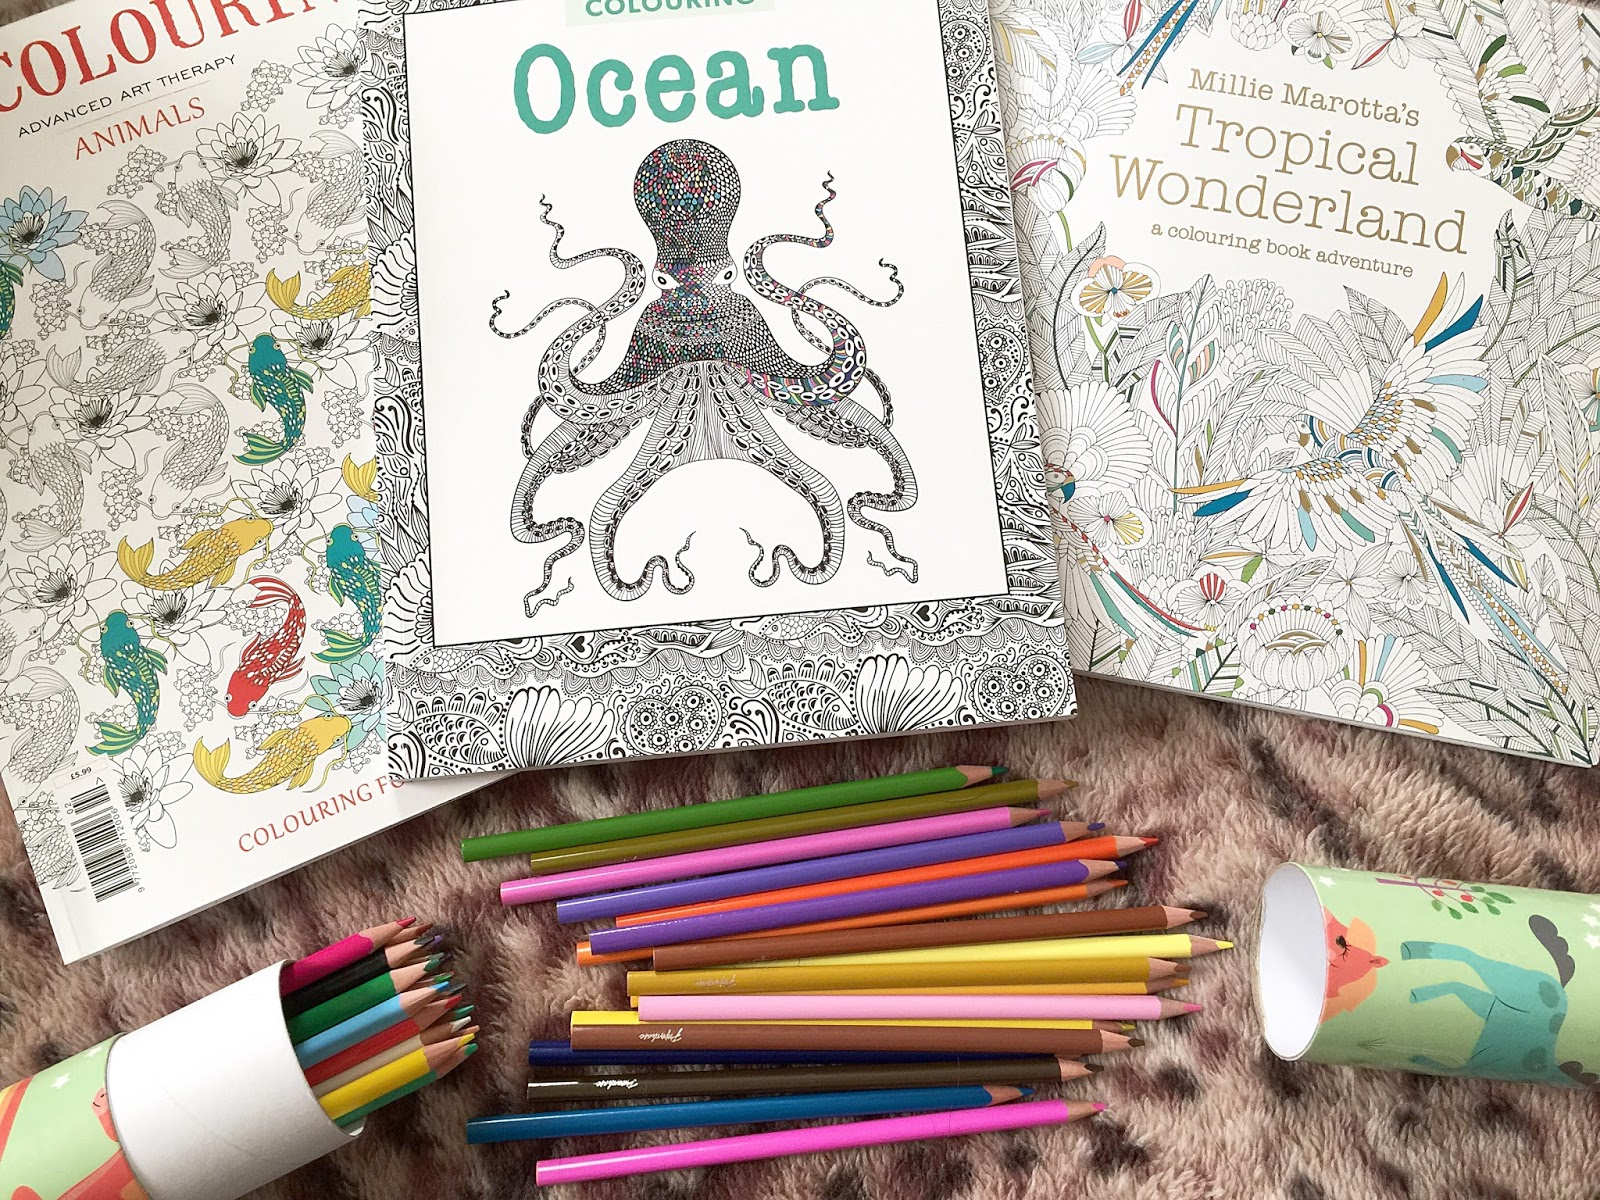 Zen colouring book animals - As You Can Tell My Favourite Books Are Animals Books It S So Fun Colouring Basic Animals In Crazy Colours And Patterns But You Can Get All Sort Of Books